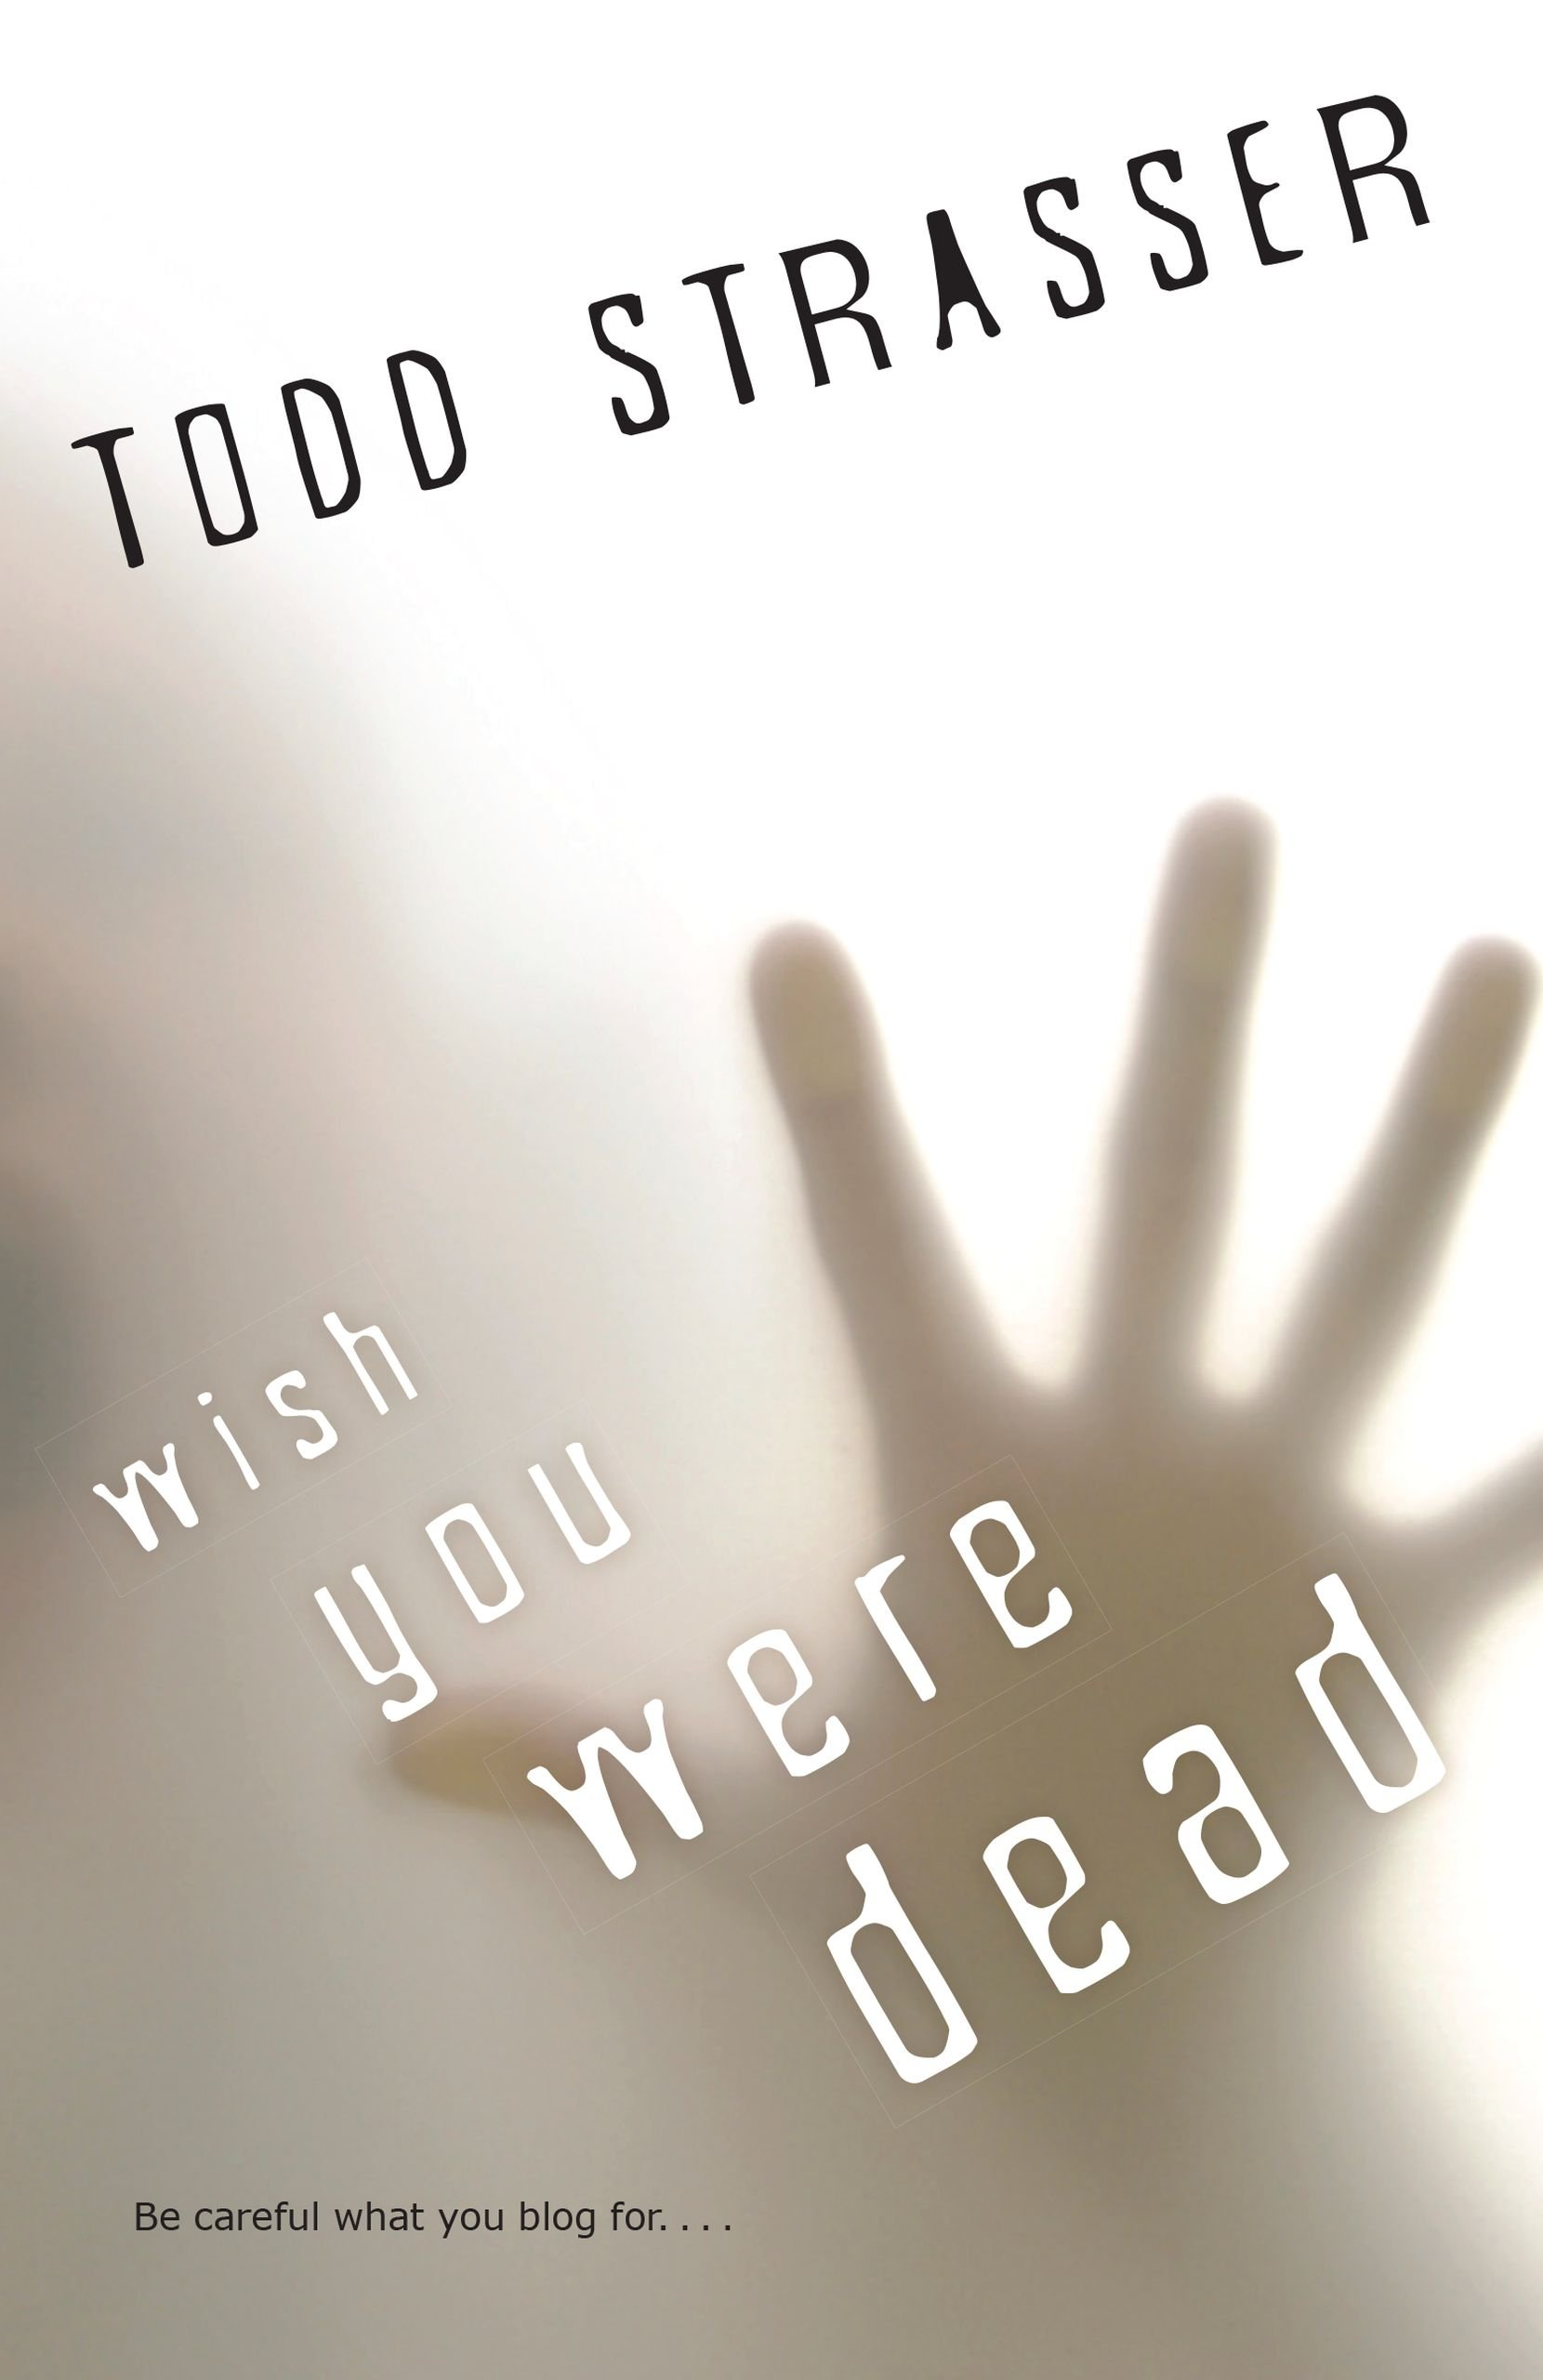 Wish You Were Dead (Thrillogy (Quality)): Amazon.es: Todd Strasser: Libros en idiomas extranjeros